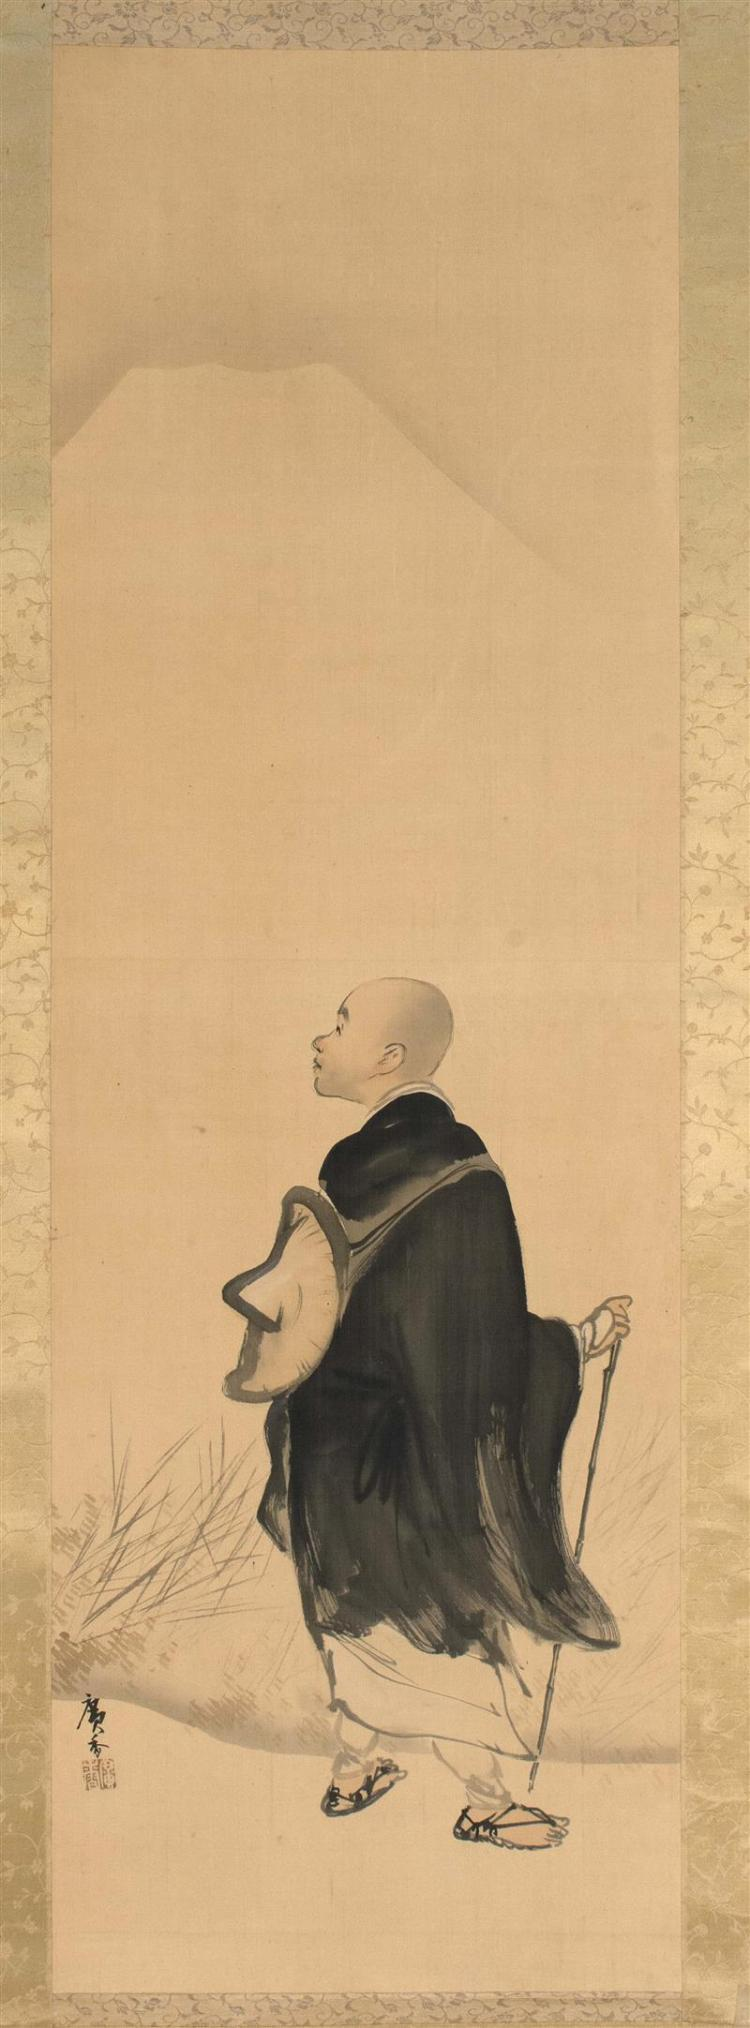 SCROLL PAINTING ON SILK By Hirohide. Depicting a wandering monk beneath Mt. Fuji. Signed and seal marked. 43.5